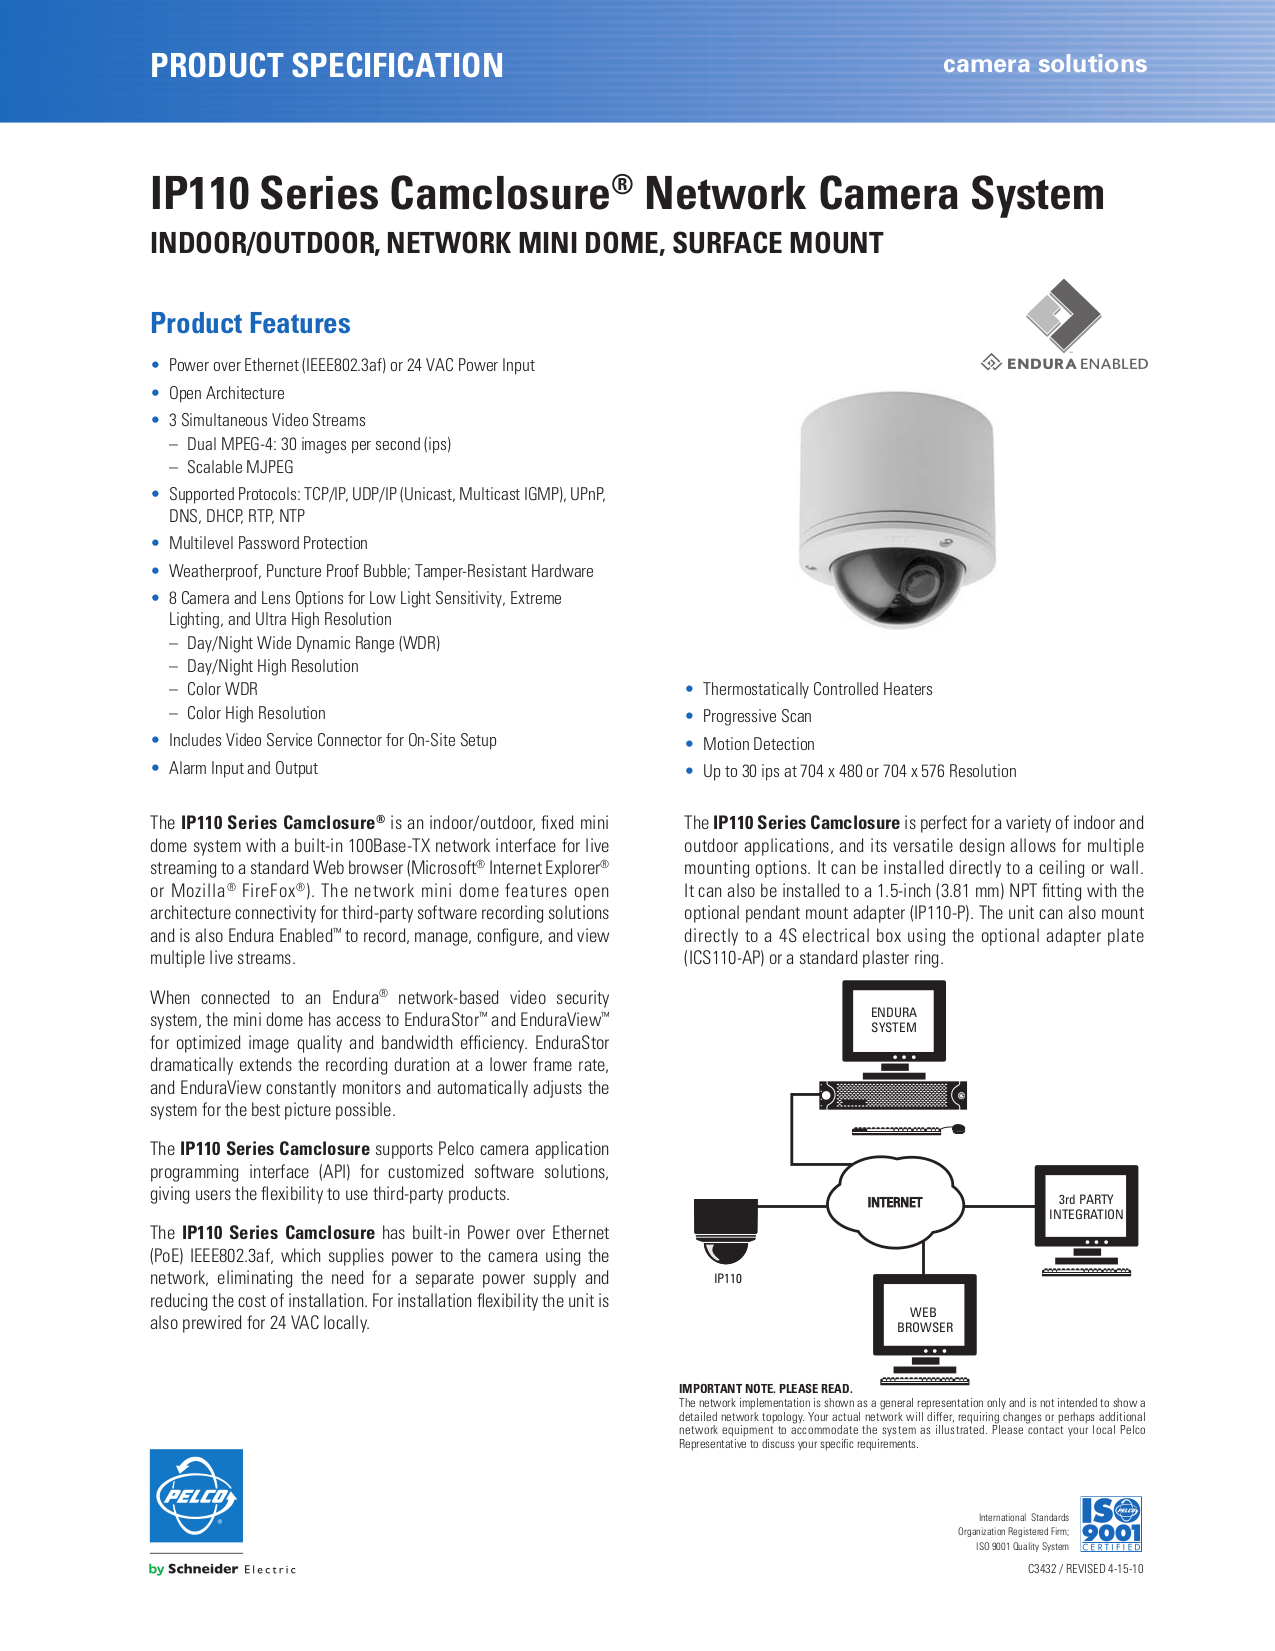 pdf for pelco ip110 series ip110 chv9 security pdf for pelco security camera ip110 series ip110 chv9 manual